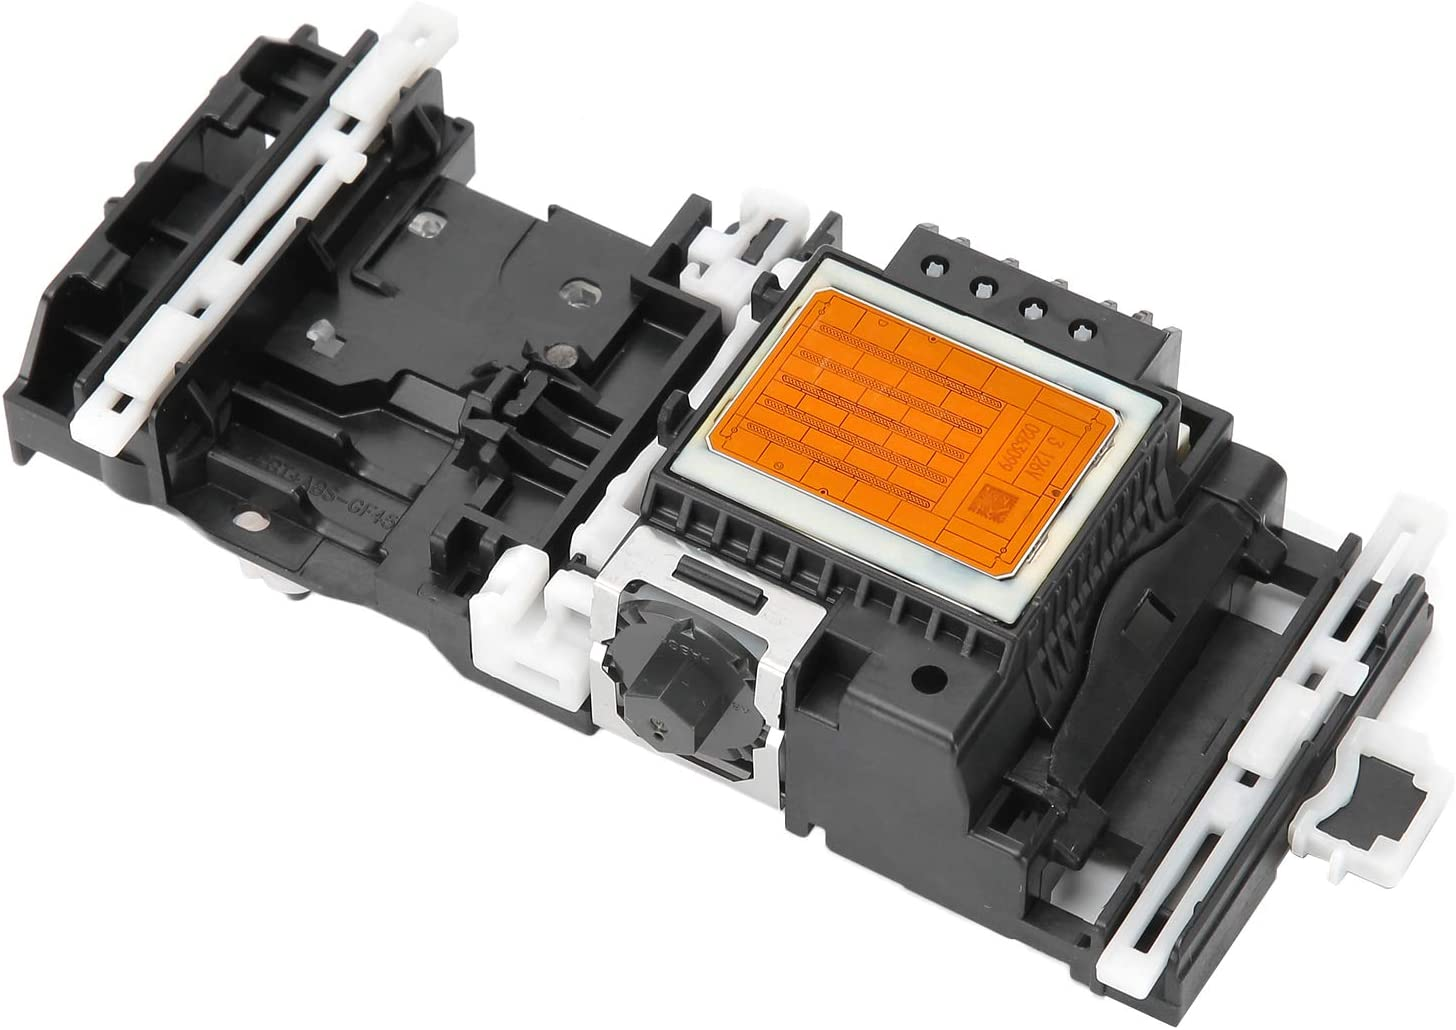 Lightweight Print Head, Printer Head Replacement Parts, Computer Supplies for Scanners Parts Printers(990A3)